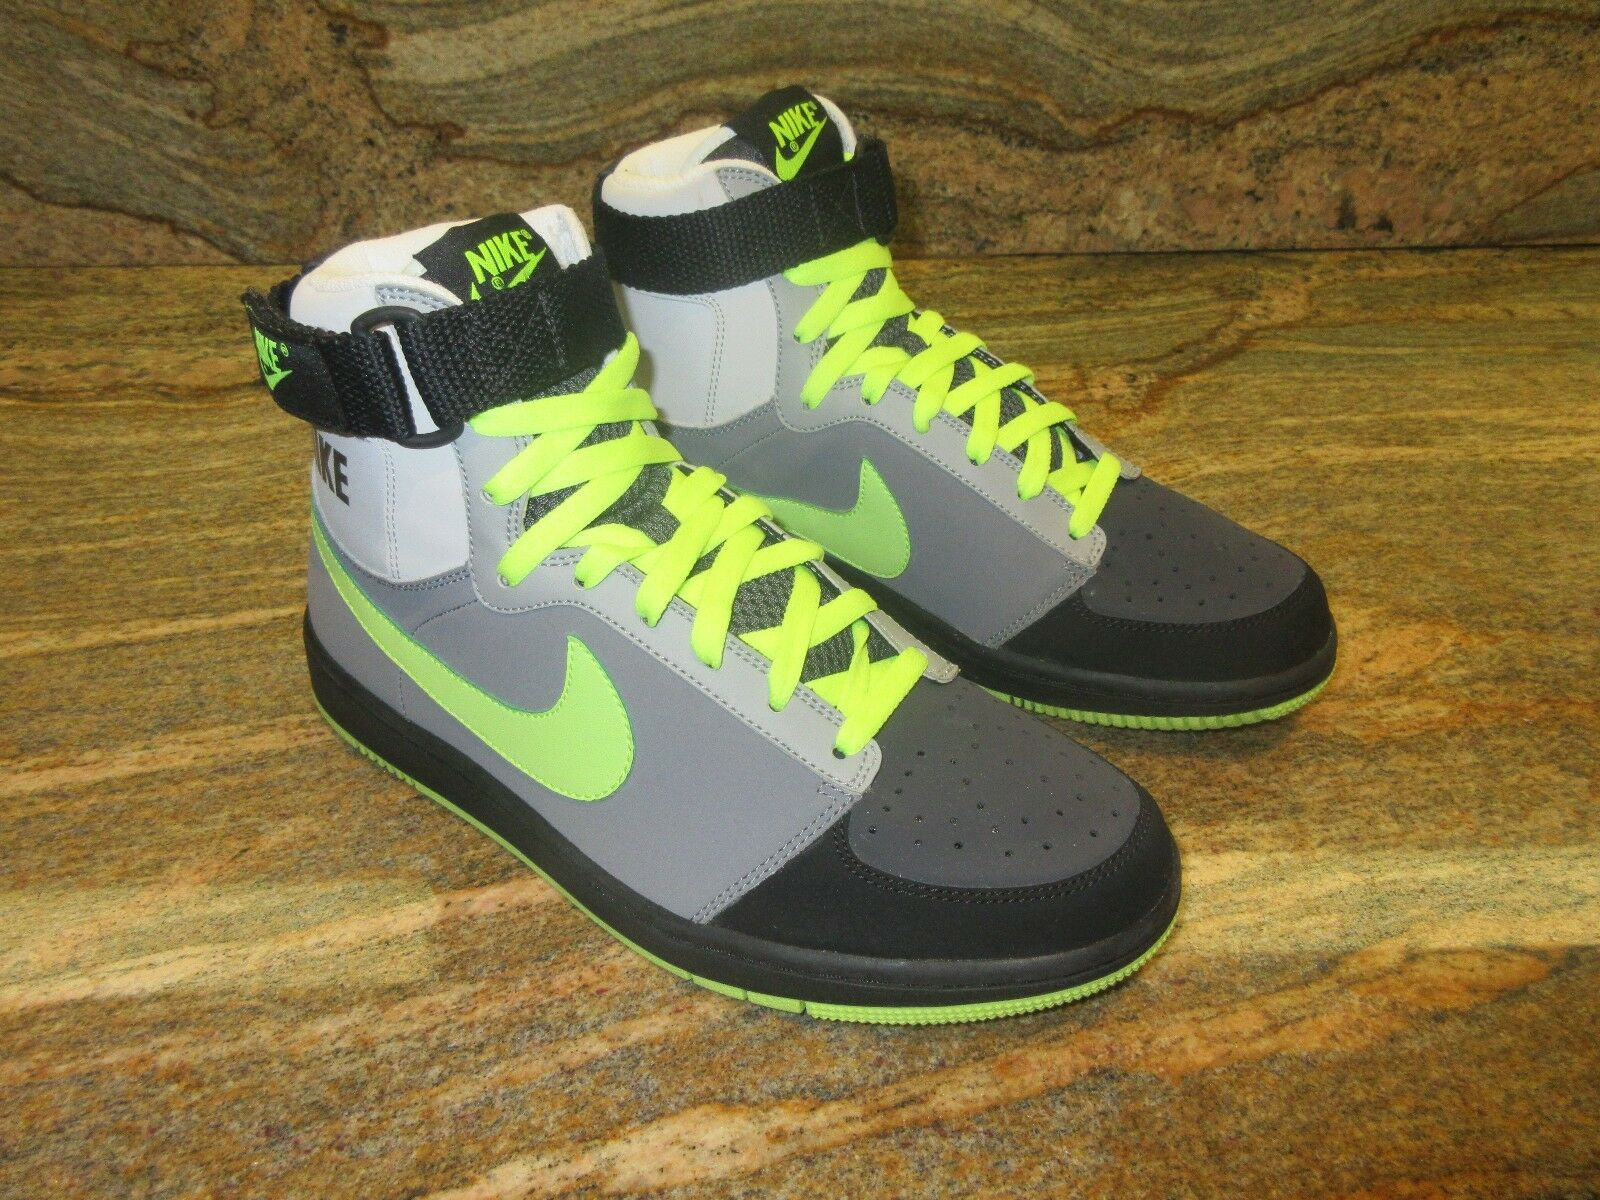 2008 Unreleased Nike Dynasty High LE Sample SZ 9 Black Neon 112 Pack 365963-171